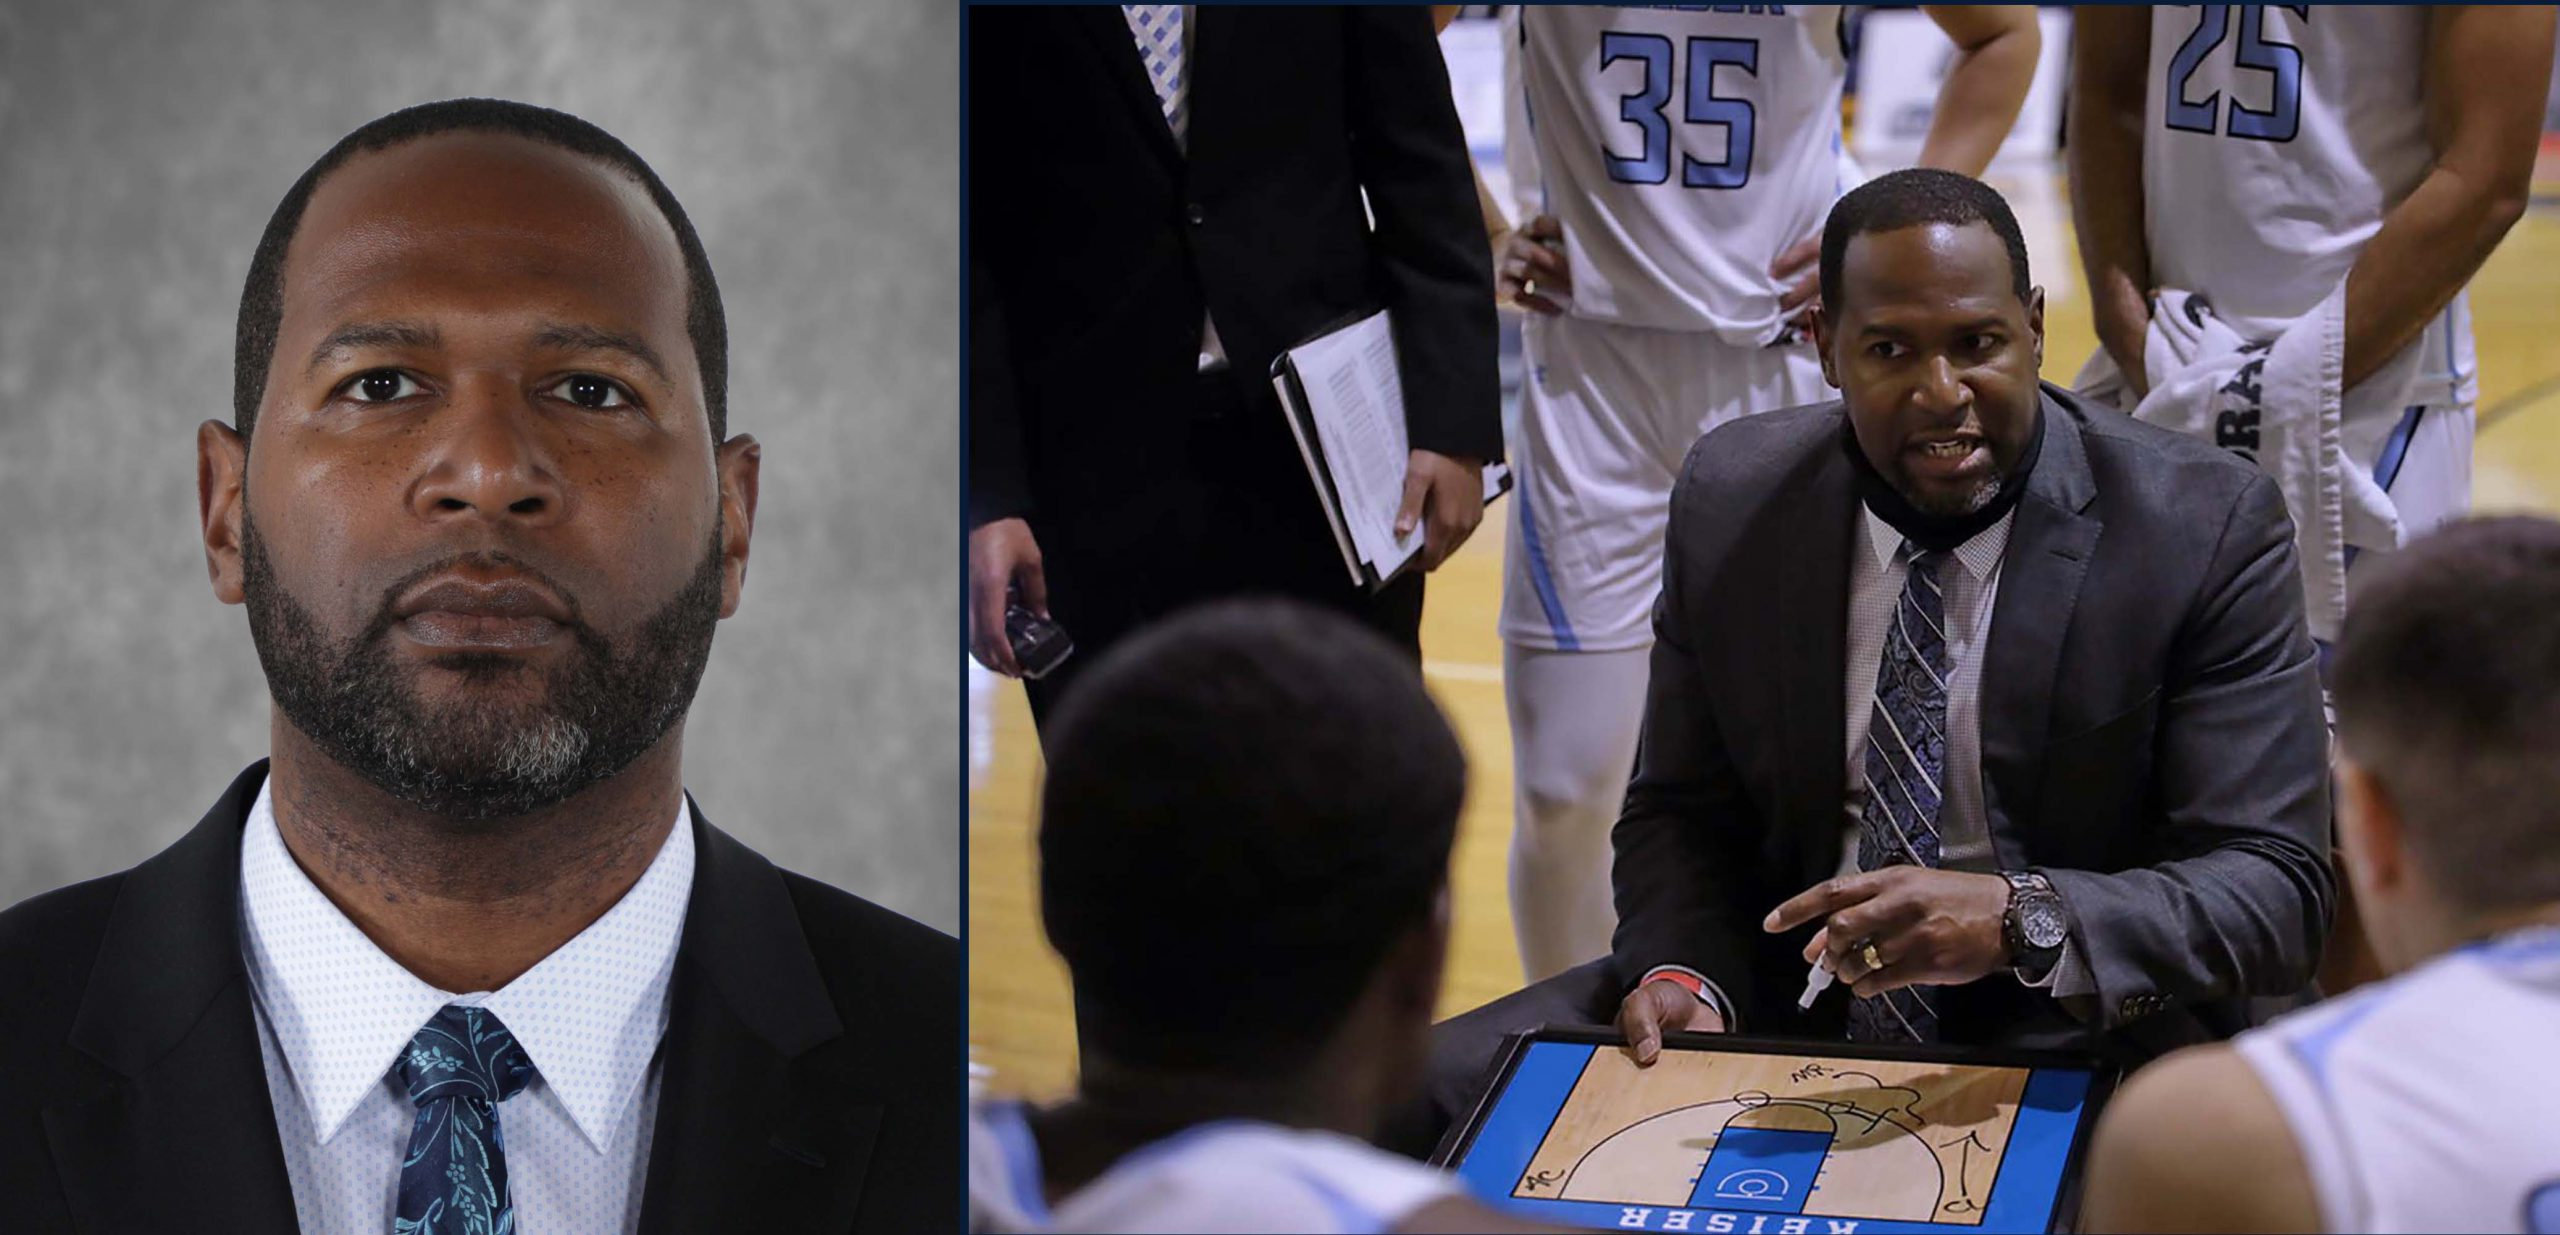 Keiser University's New Basketball Coach Concentrates on Character, Self-Sacrifice